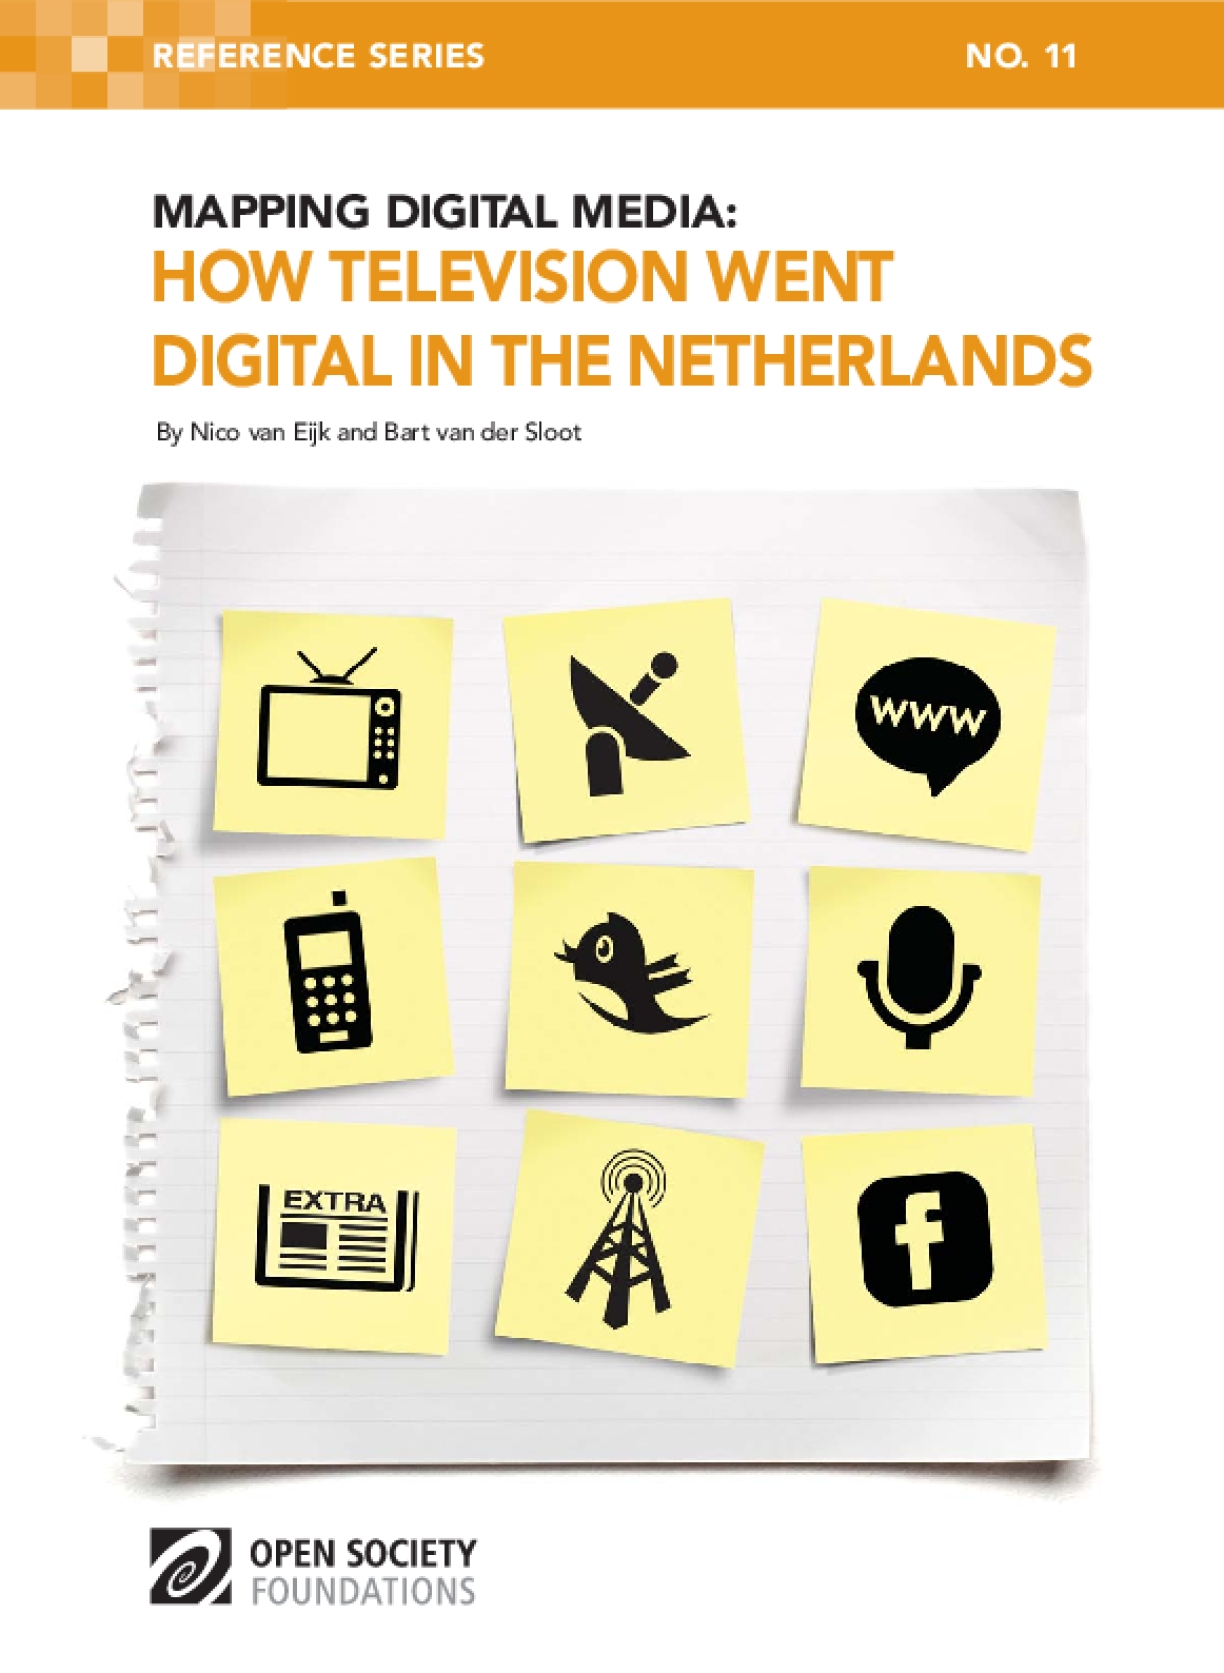 Mapping Digital Media: How Television Went Digital in the Netherlands